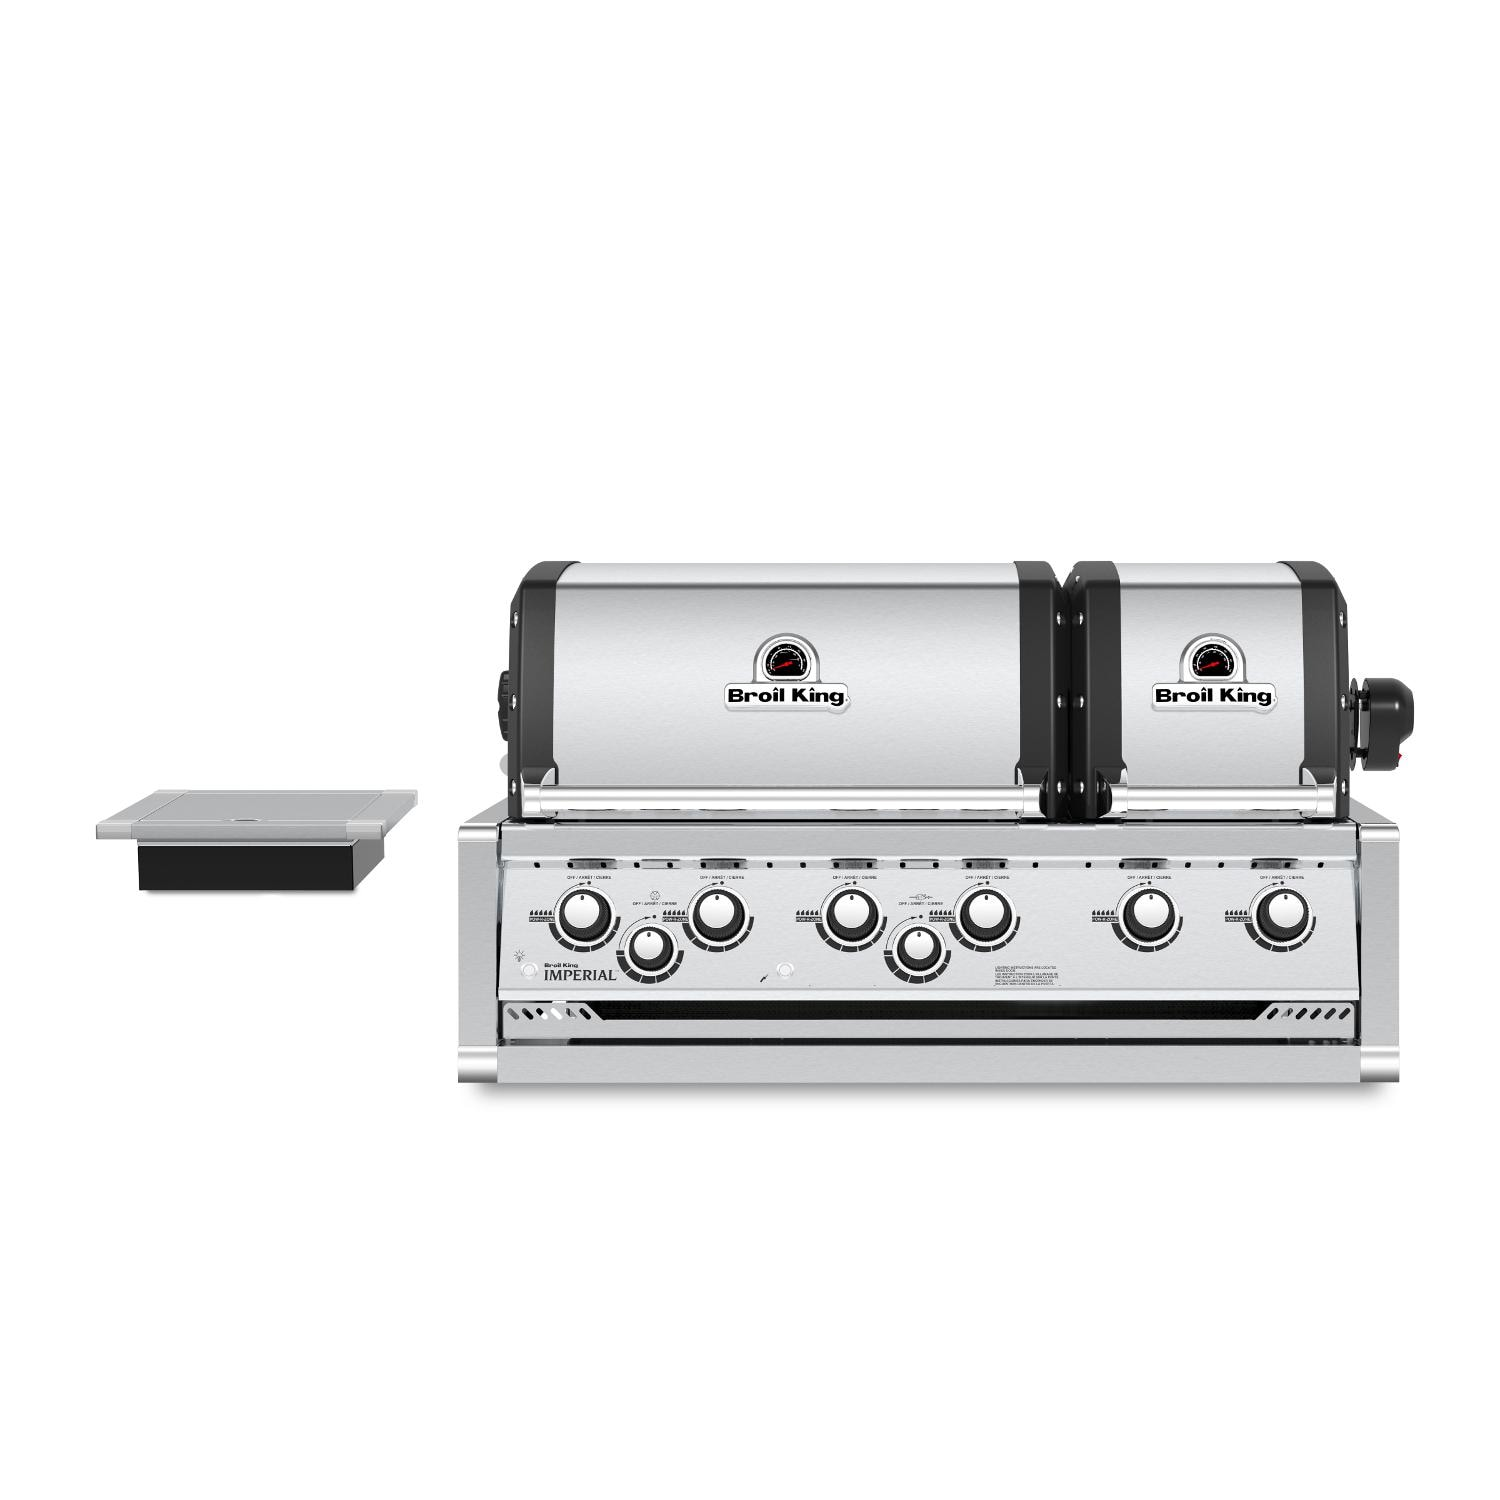 Broil King  Imperial XLS 6-Burner Built-In Propane Gas Grill With Rotisserie and Side Burner - Stainless Steel - 957084